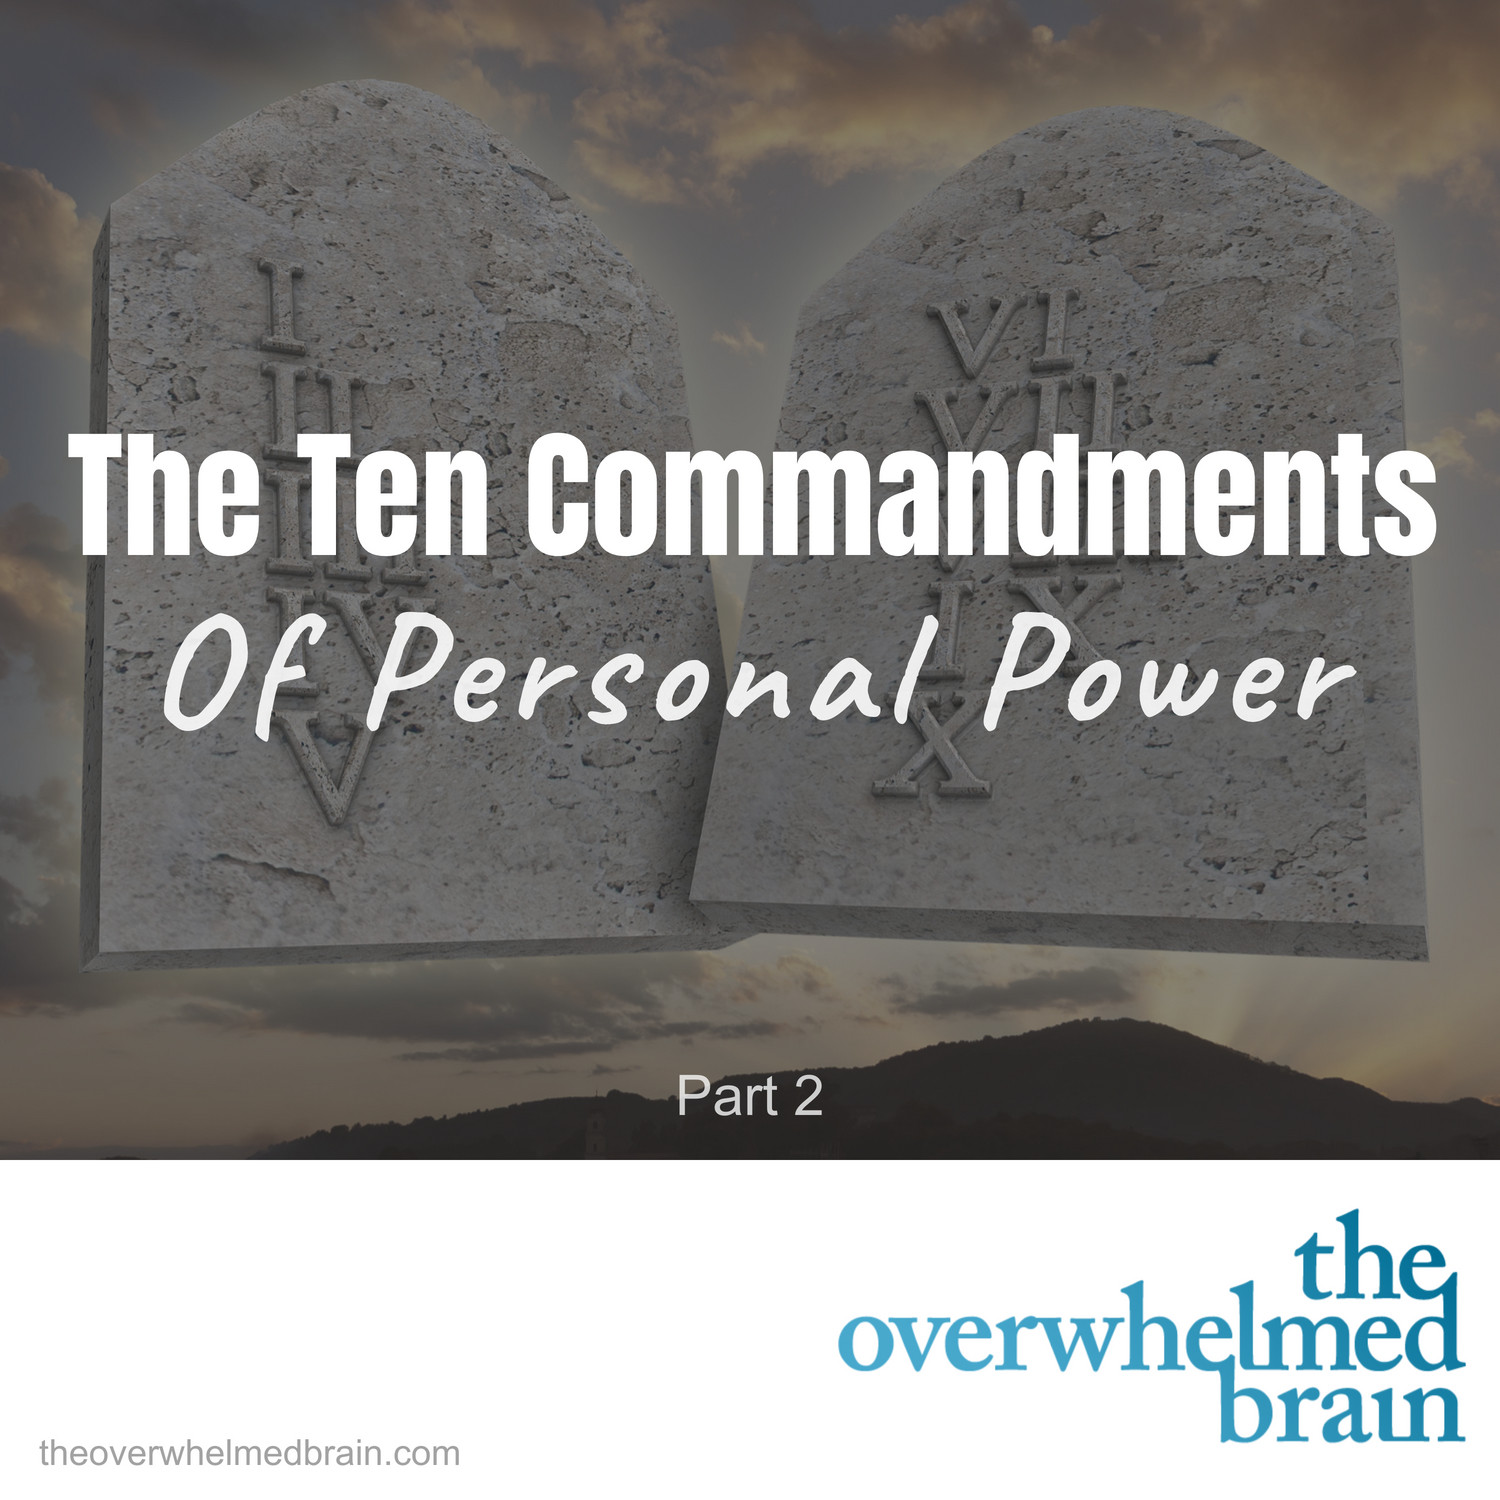 The Ten Commandments of Personal Power - Part 2